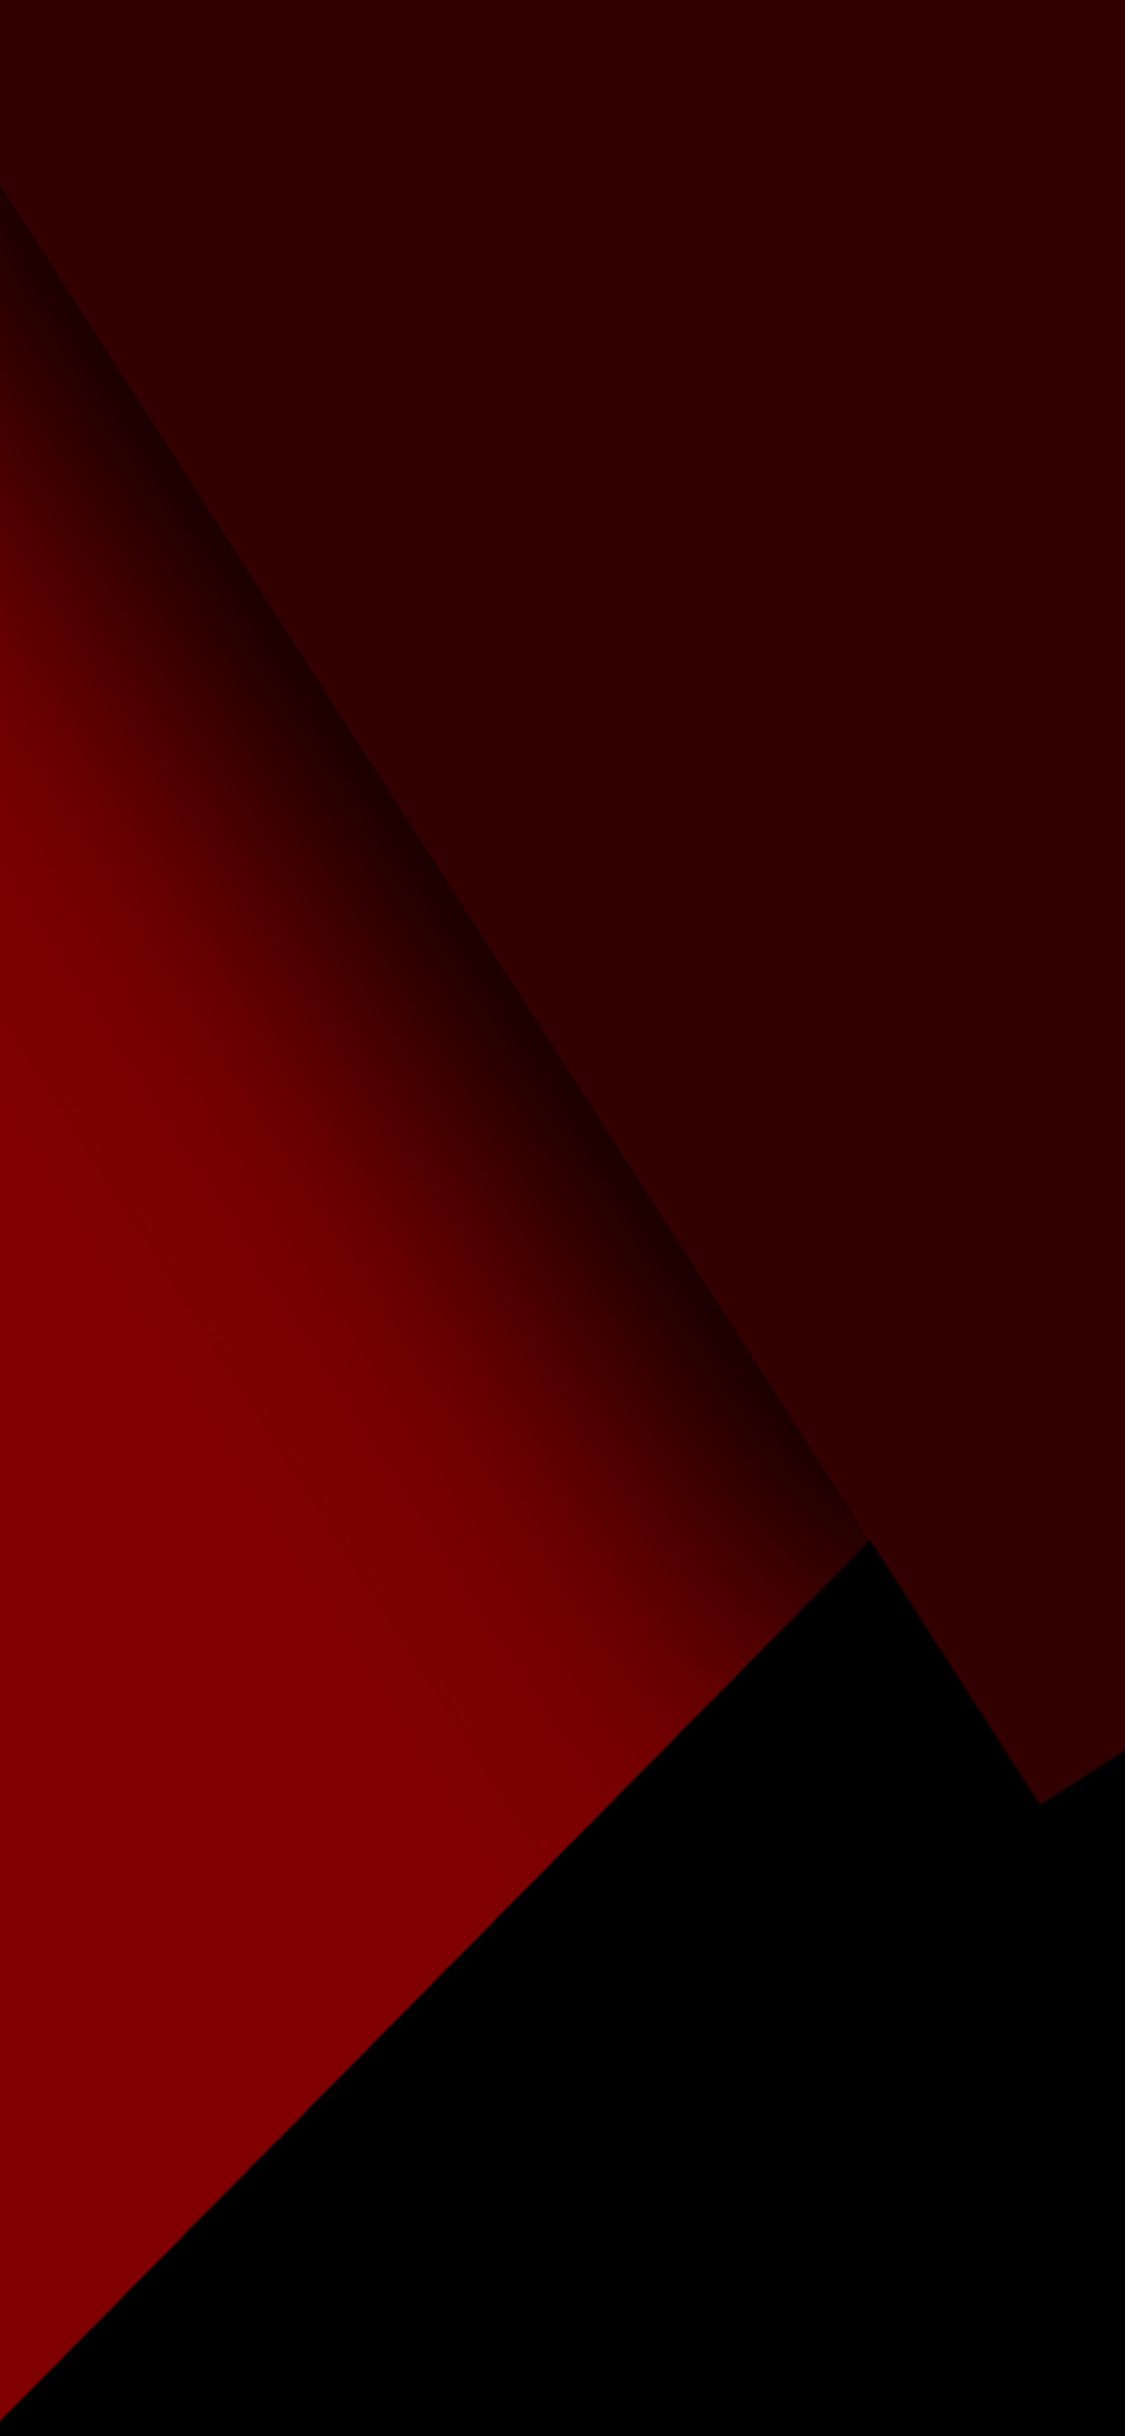 1125x2436 Dark Red Black Abstract 4k Iphone Xs Iphone 10